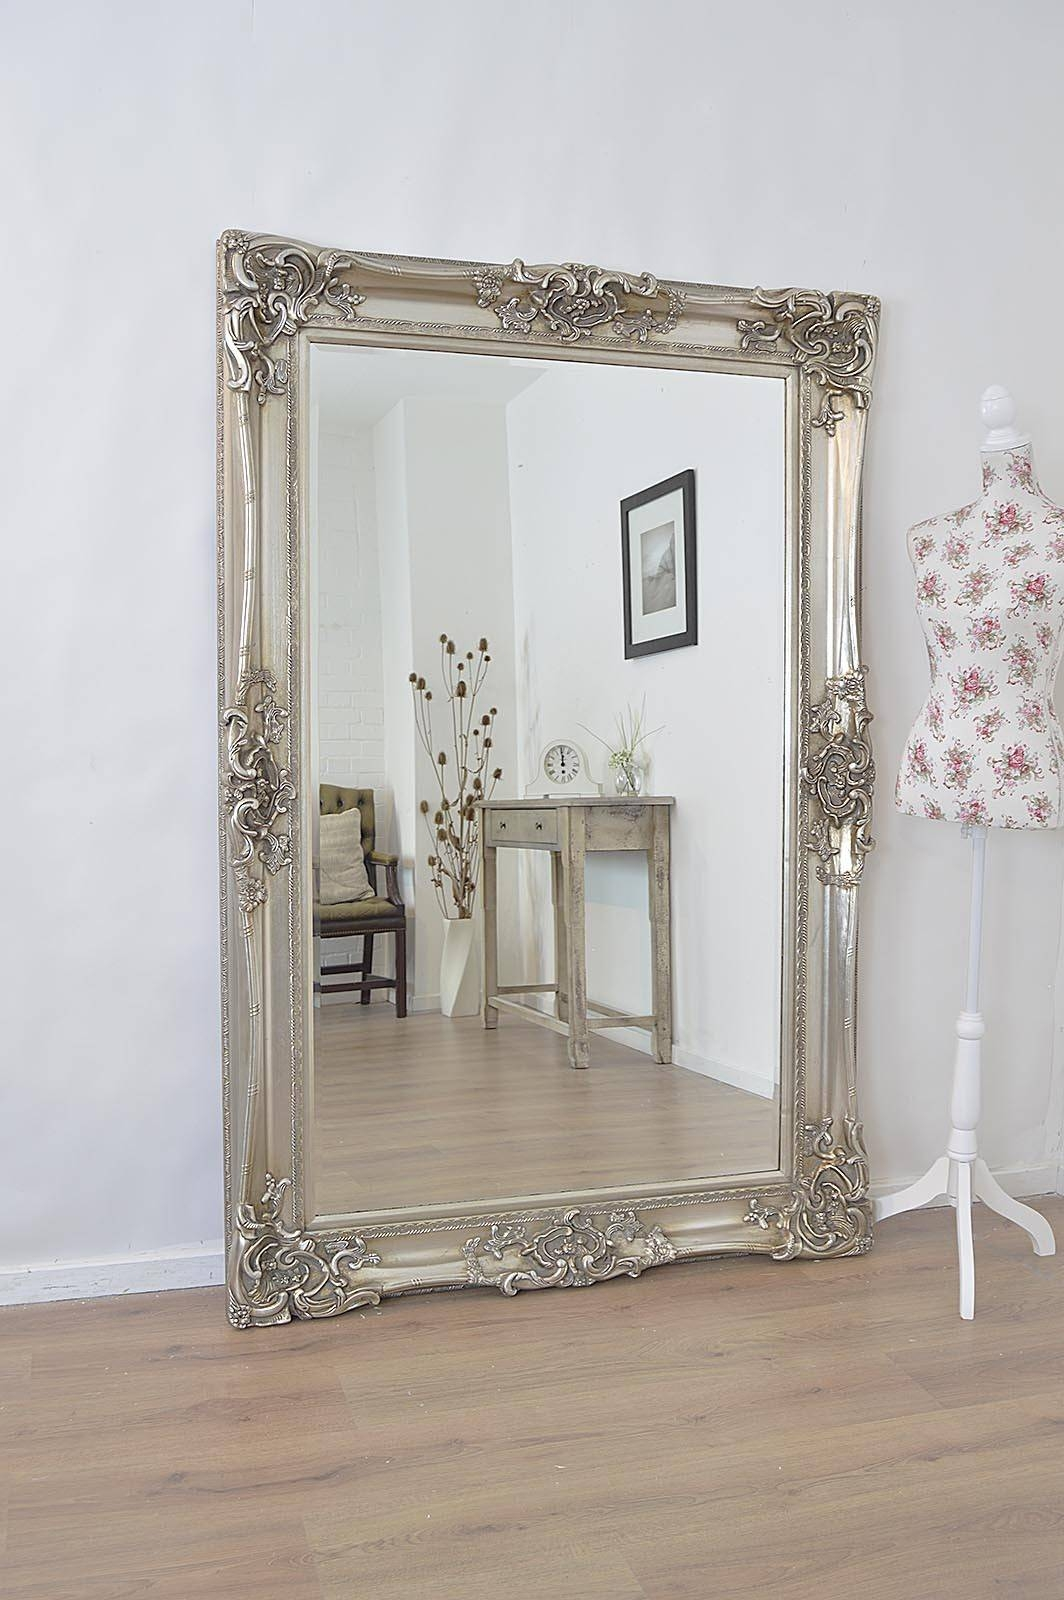 Antique Full Length Wall Mirrors Antique Wood Framed Wall Mirrors Pertaining To Ornate Standing Mirrors (View 2 of 15)